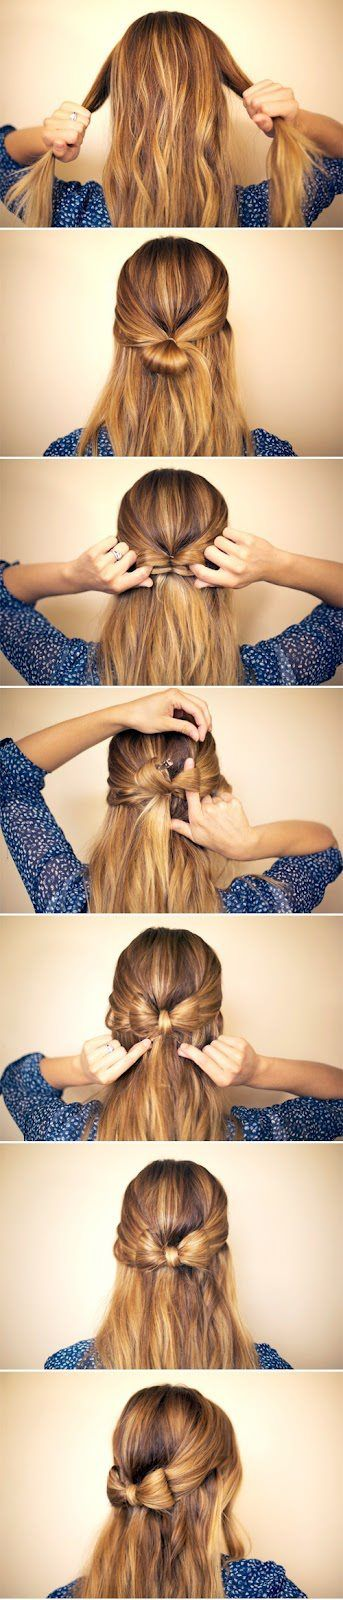 I want to try!! Would it work on Shoulder length hair?